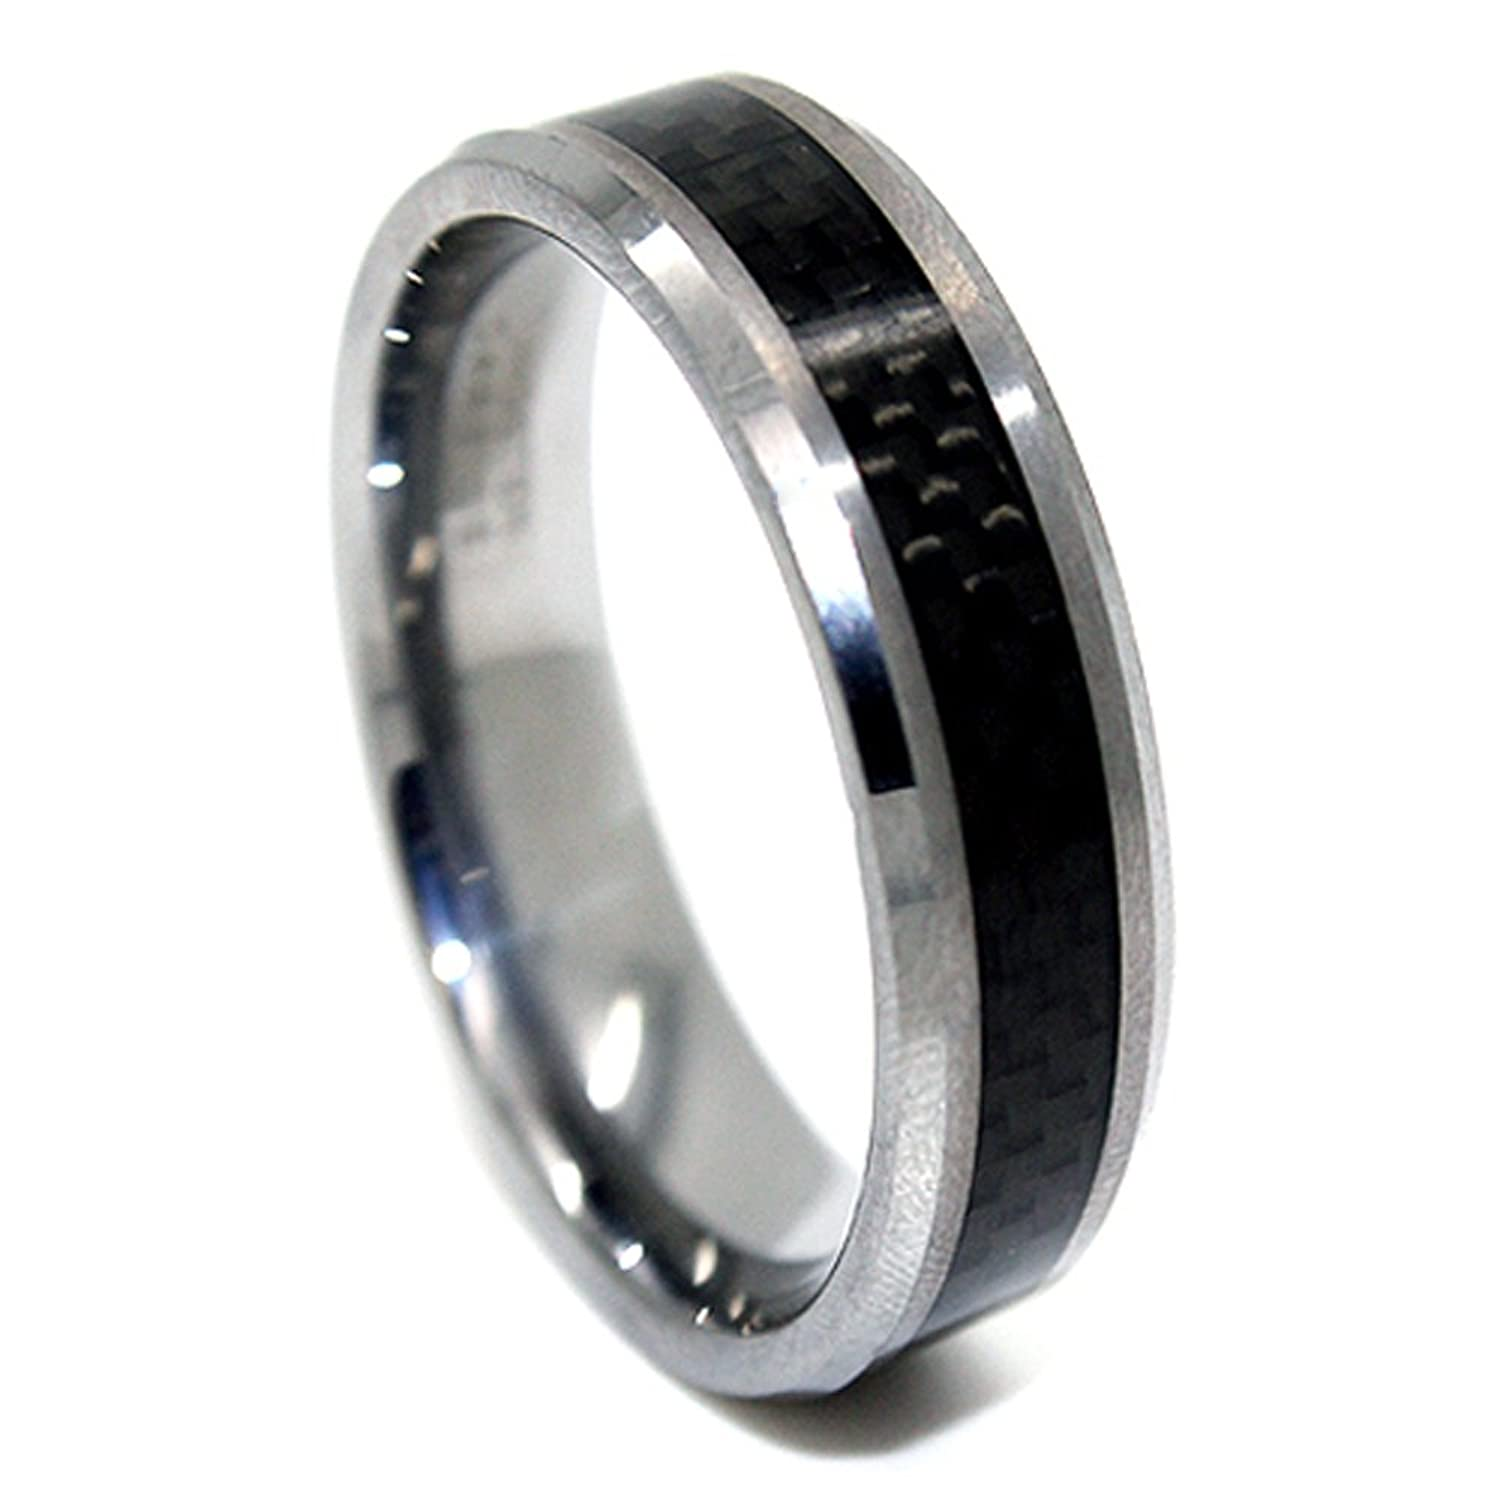 wedding rings fibre jones of ernest carbon ring ricksalerealty titanium com detail best fiber fresh